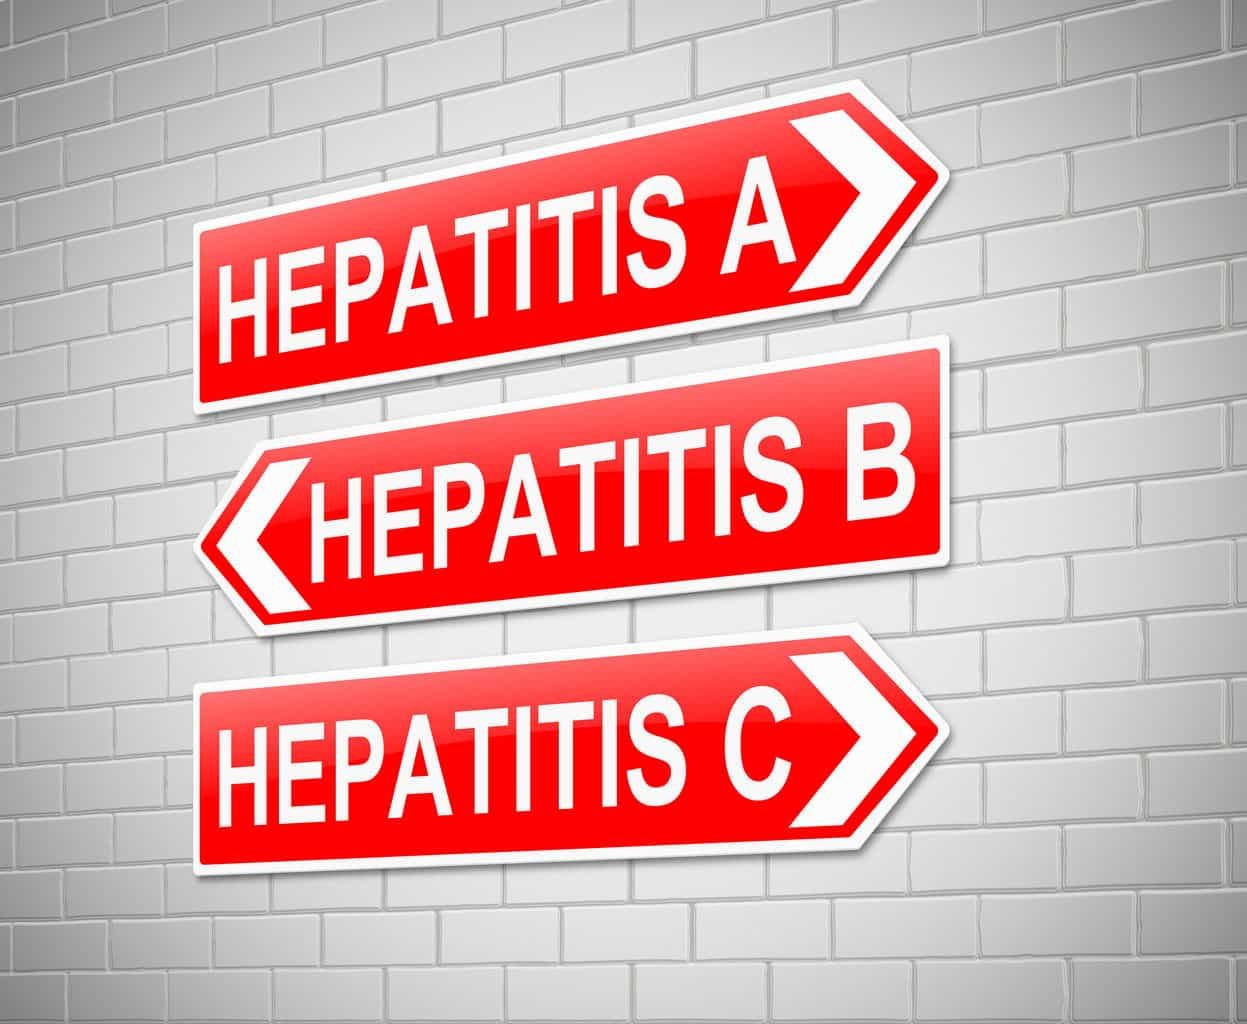 Can hepatitis be cured?